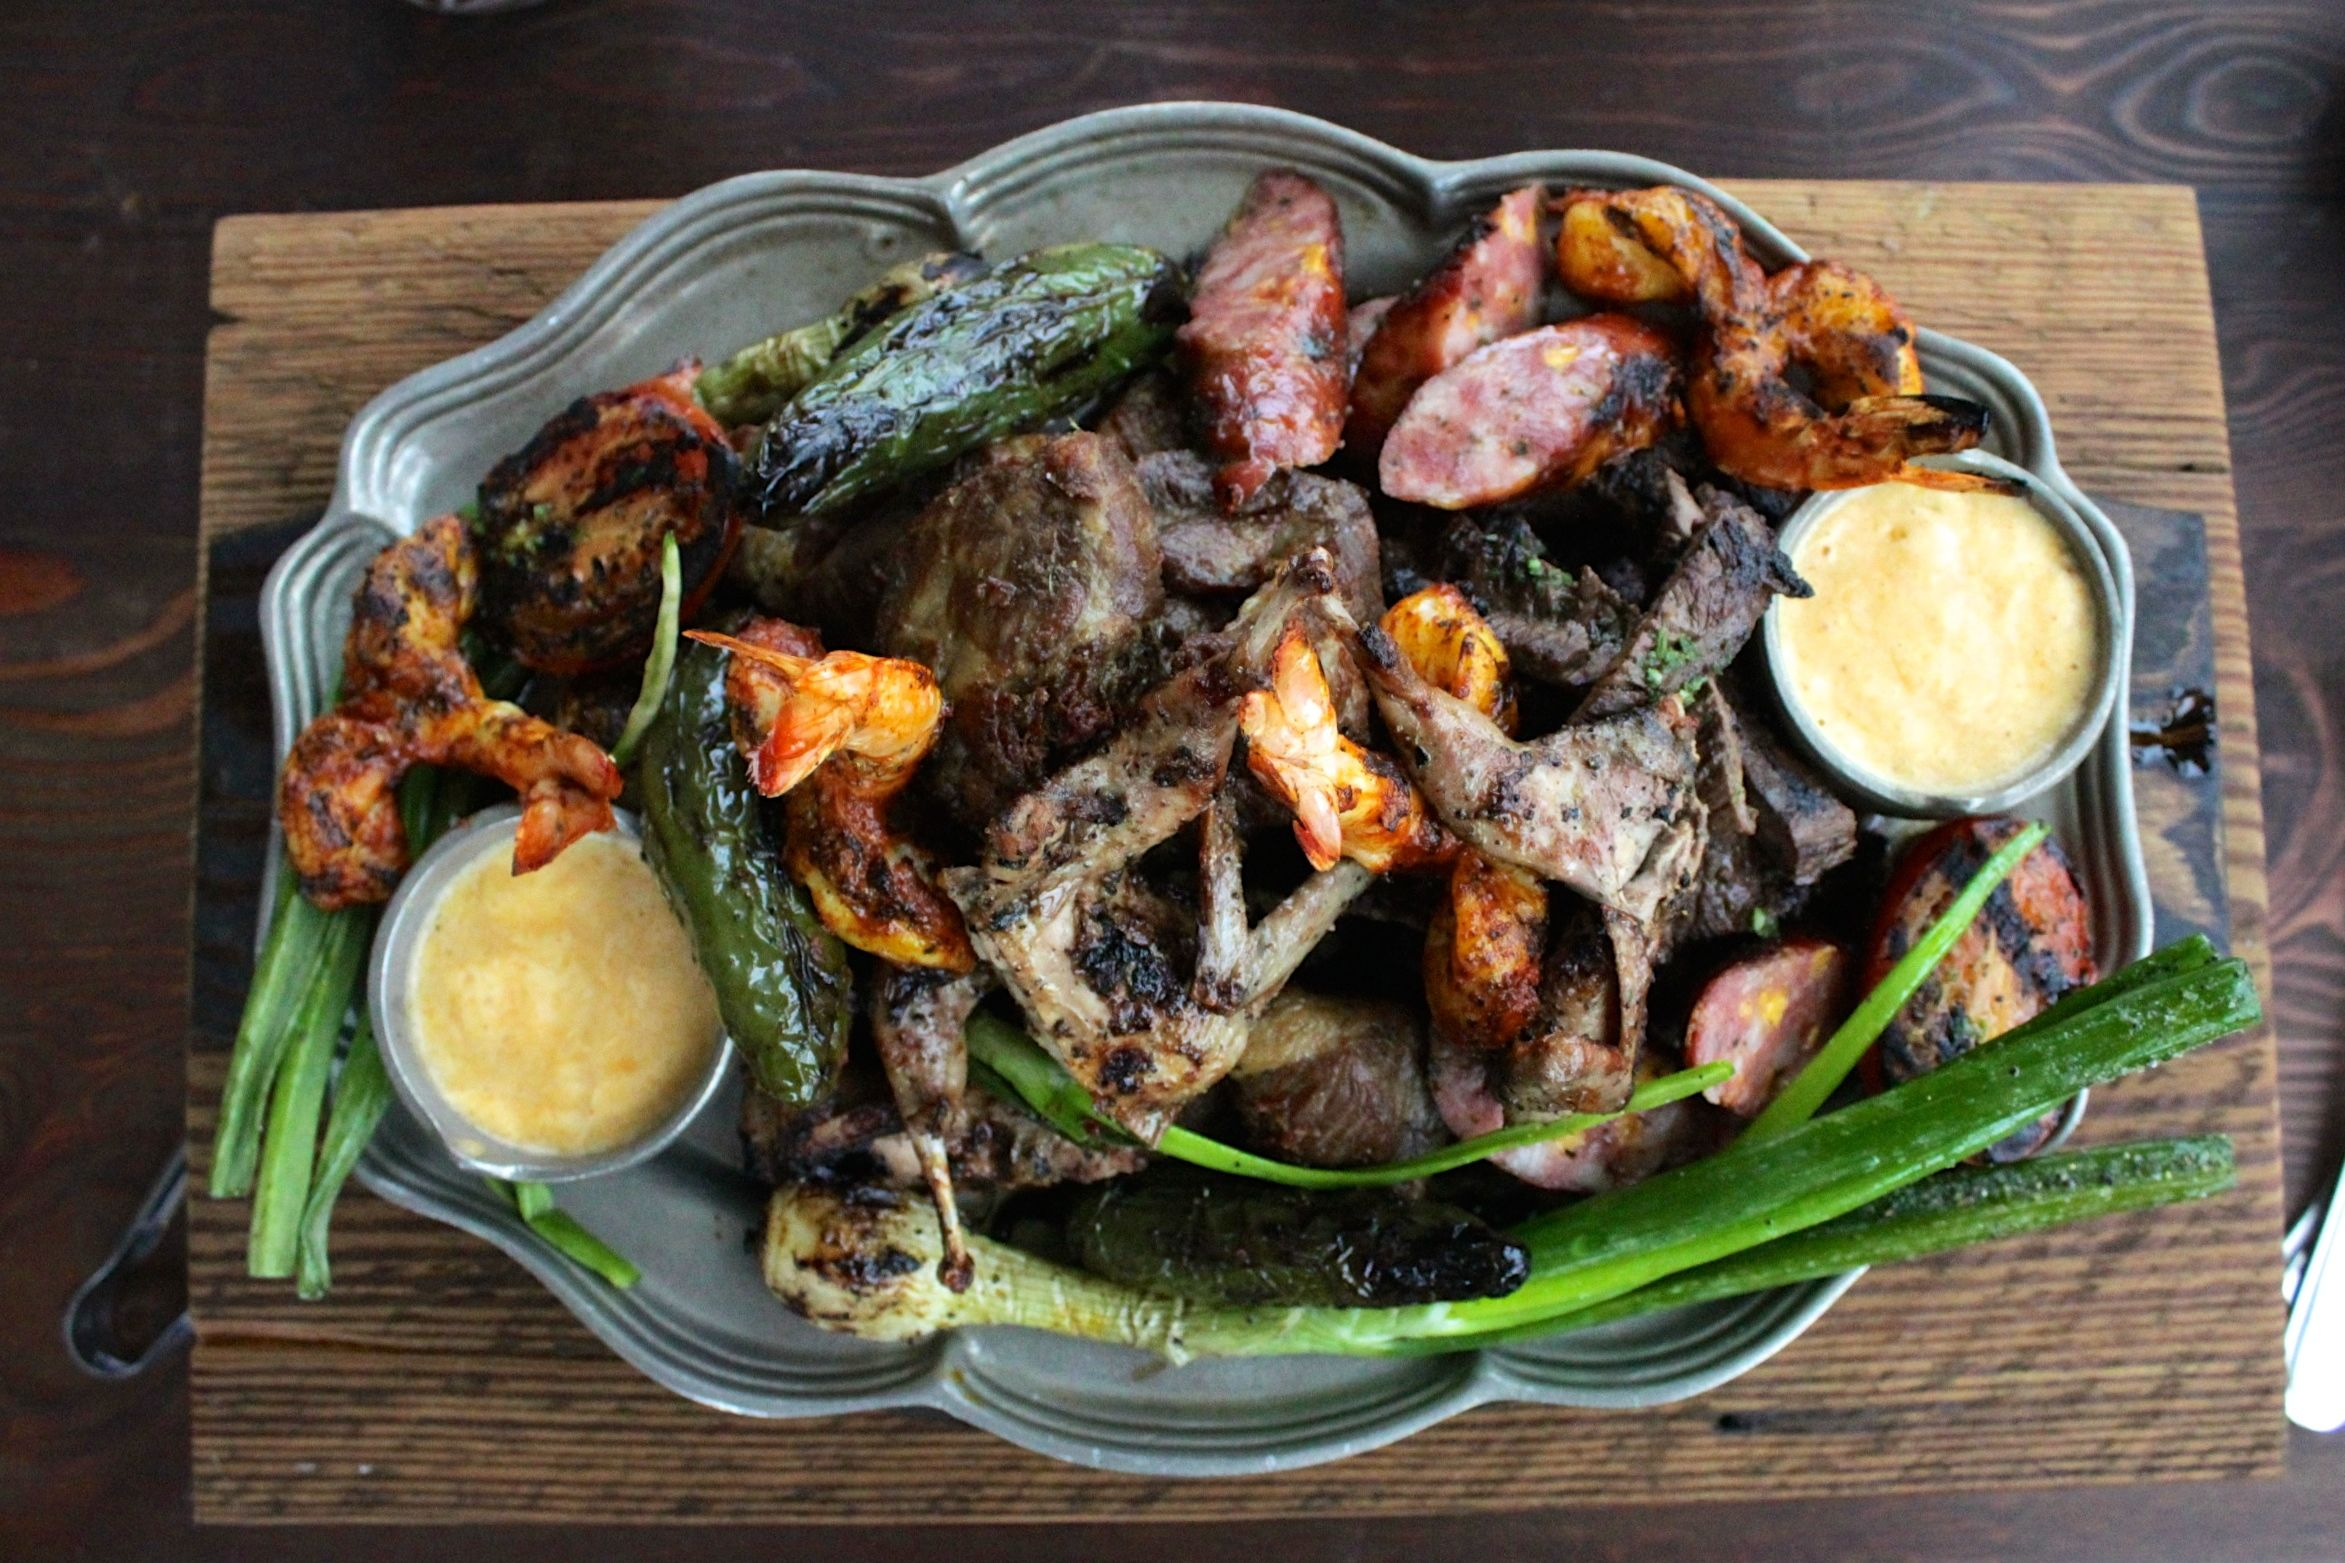 Parrillada familiar fajitas  5  kukug7